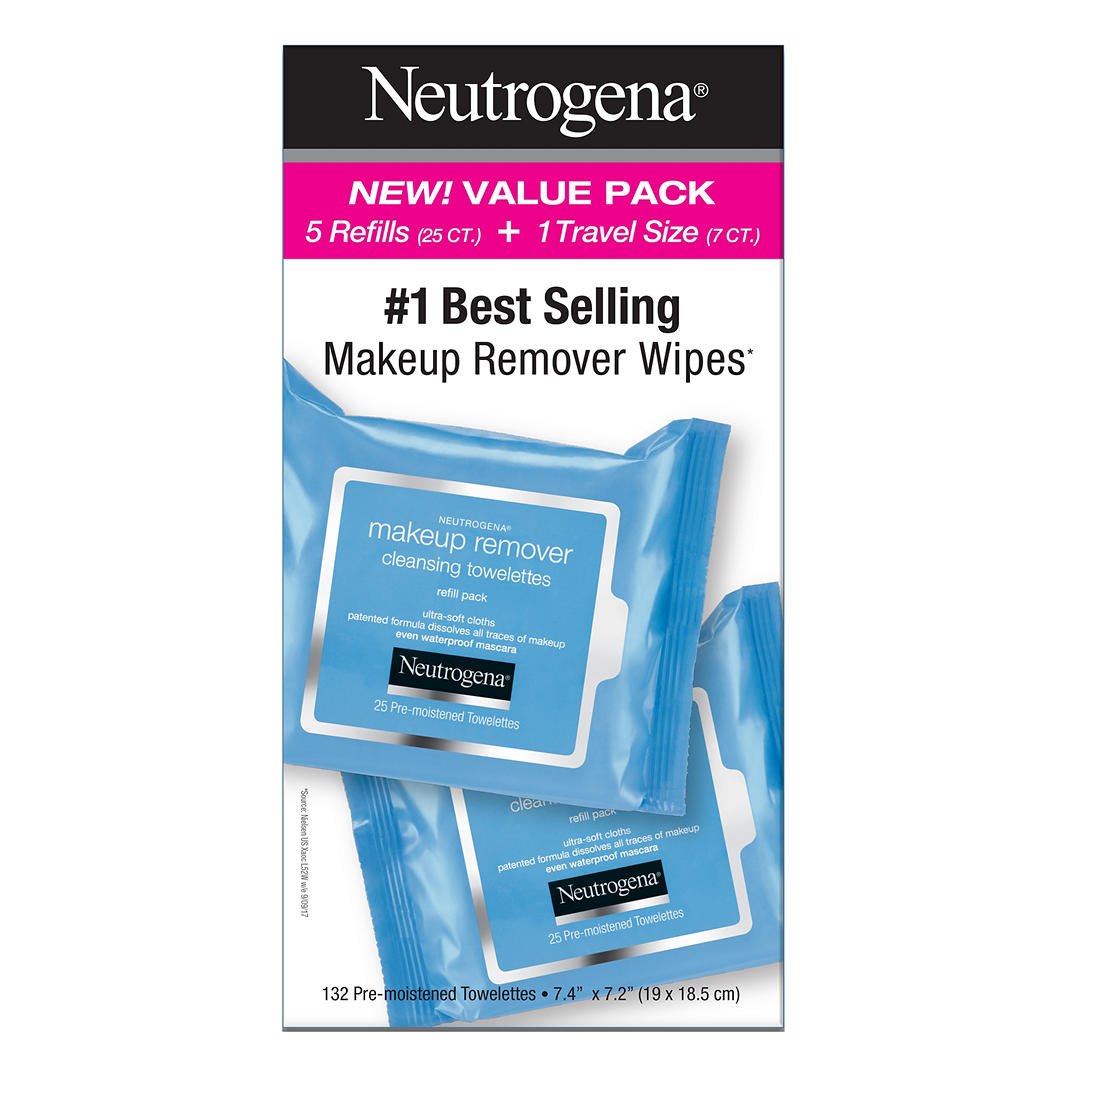 Neutrogena Cleansing Makeup Remover Facial Wipes Waterproof Mascara Remover Refill Pack, 125 ct. Hover to zoom